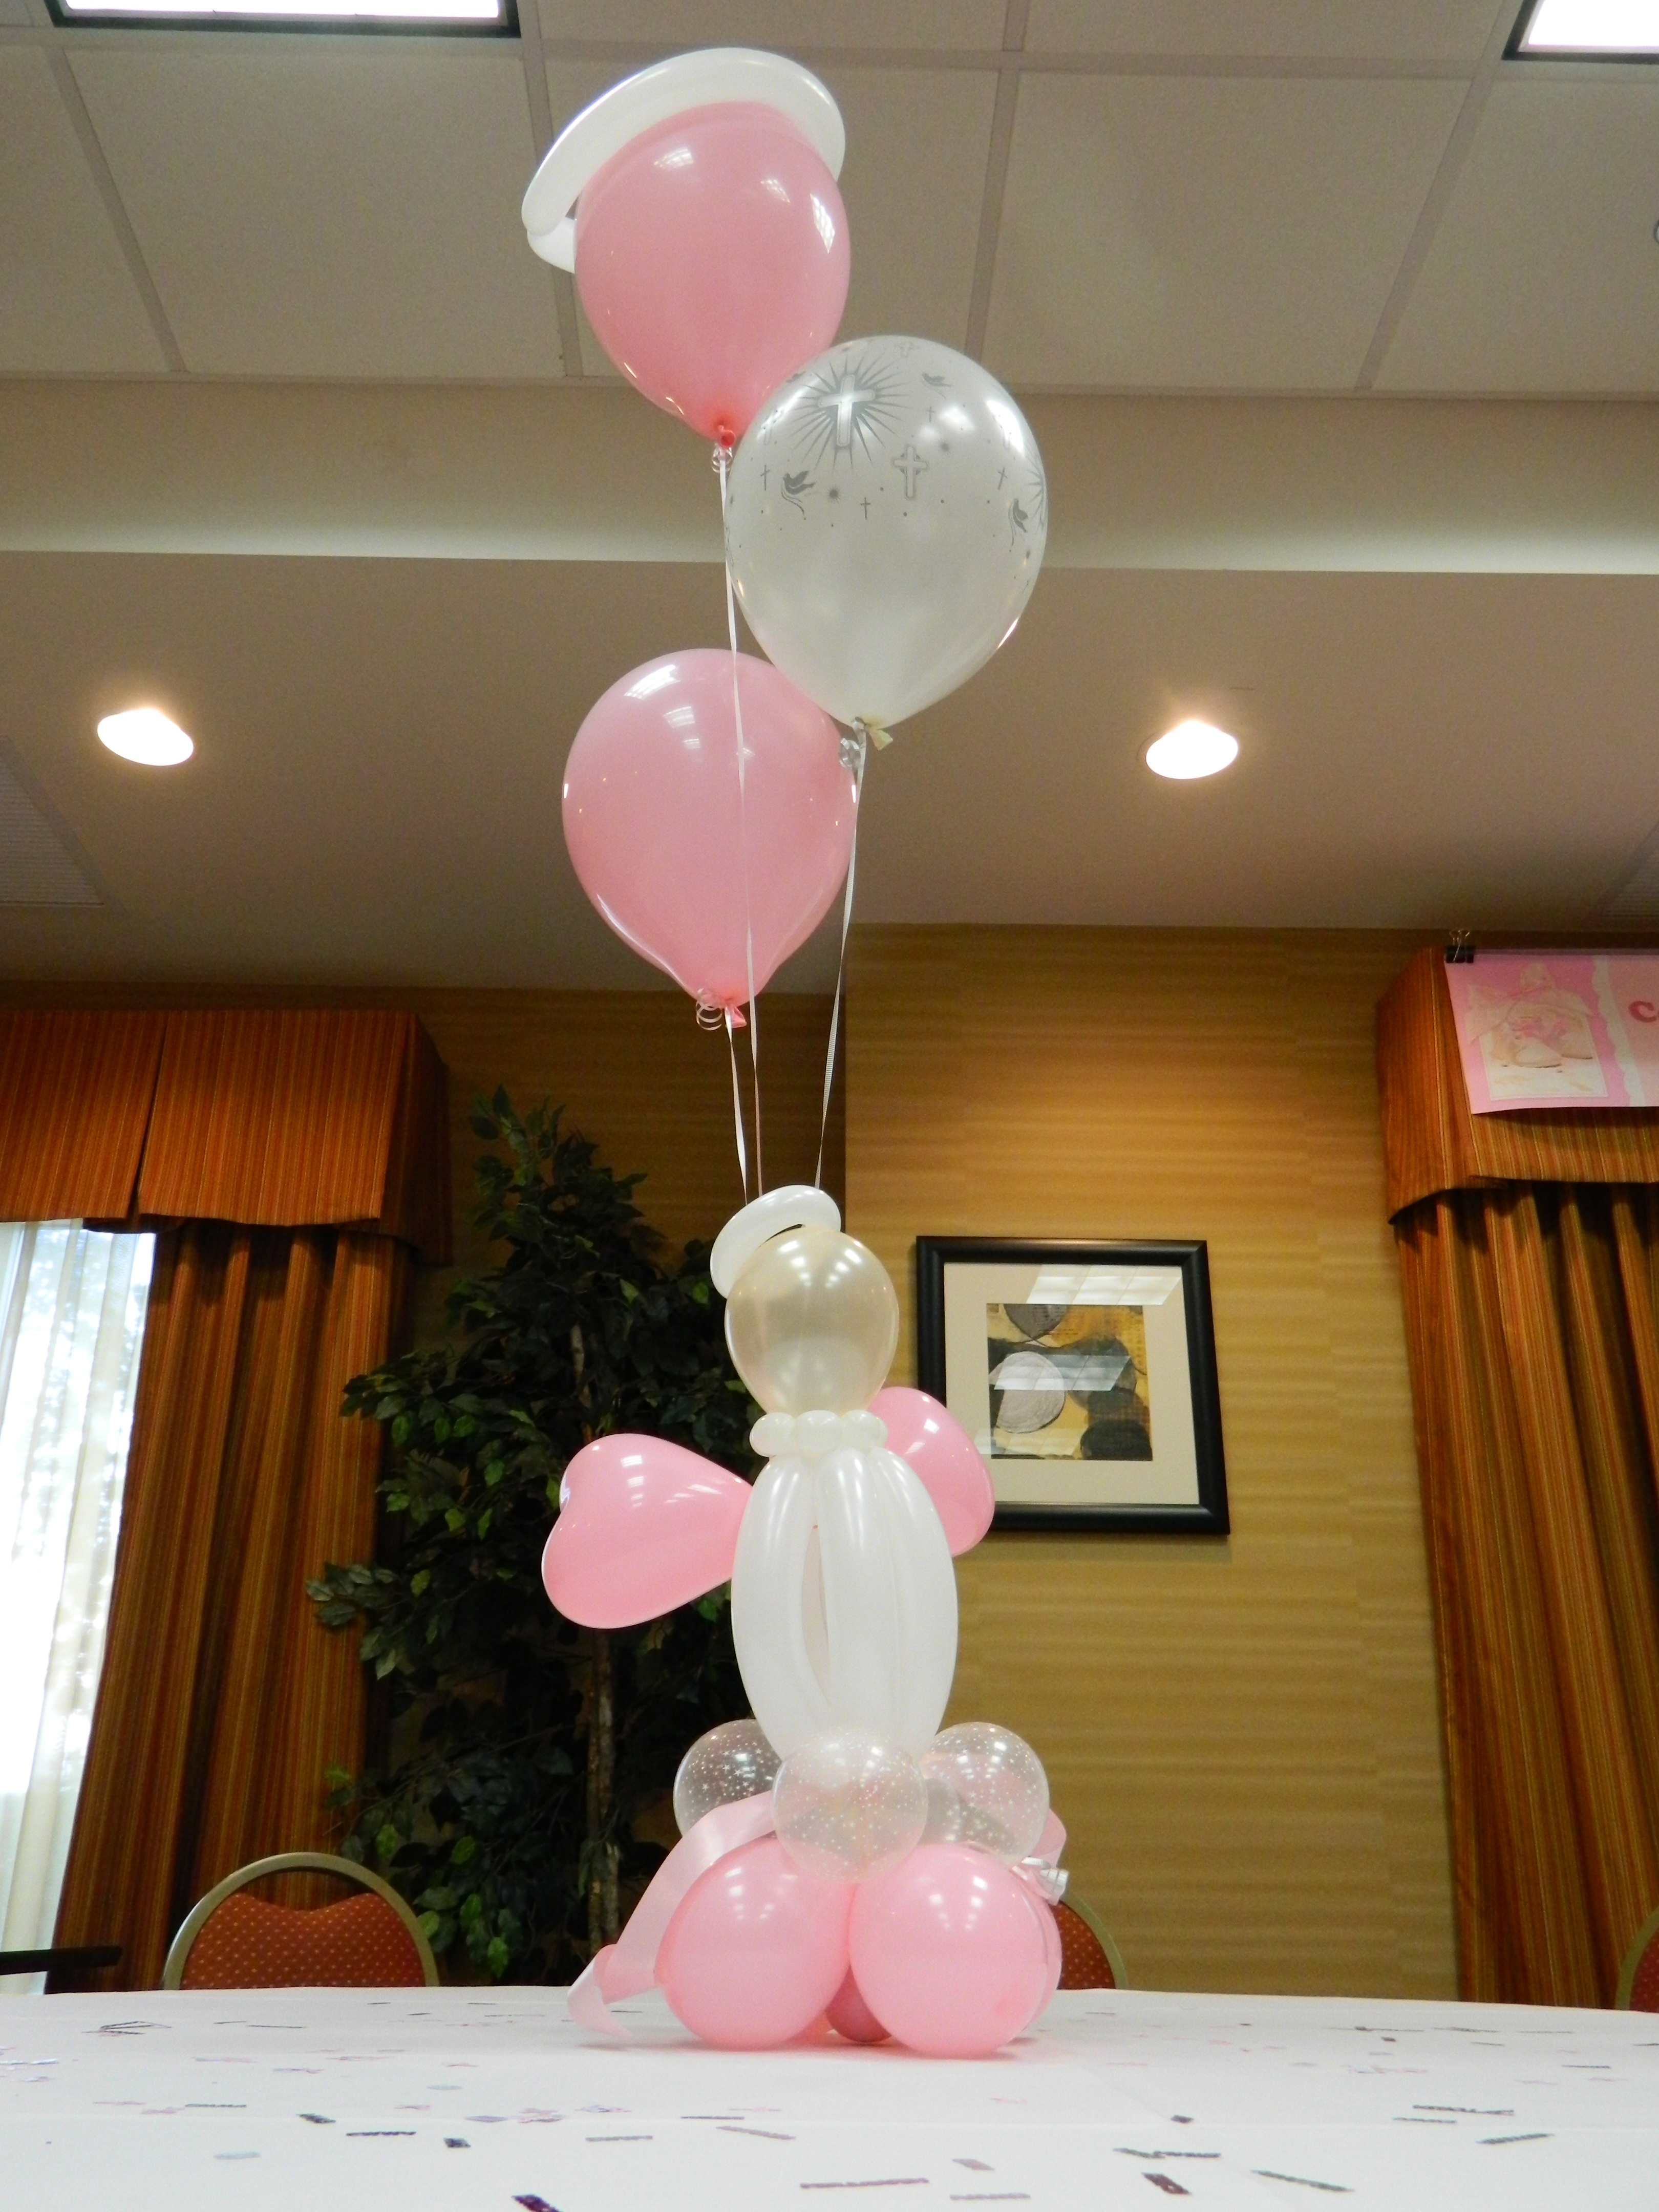 Christening balloon decor amytheballoonlady for Balloon decoration ideas for christening